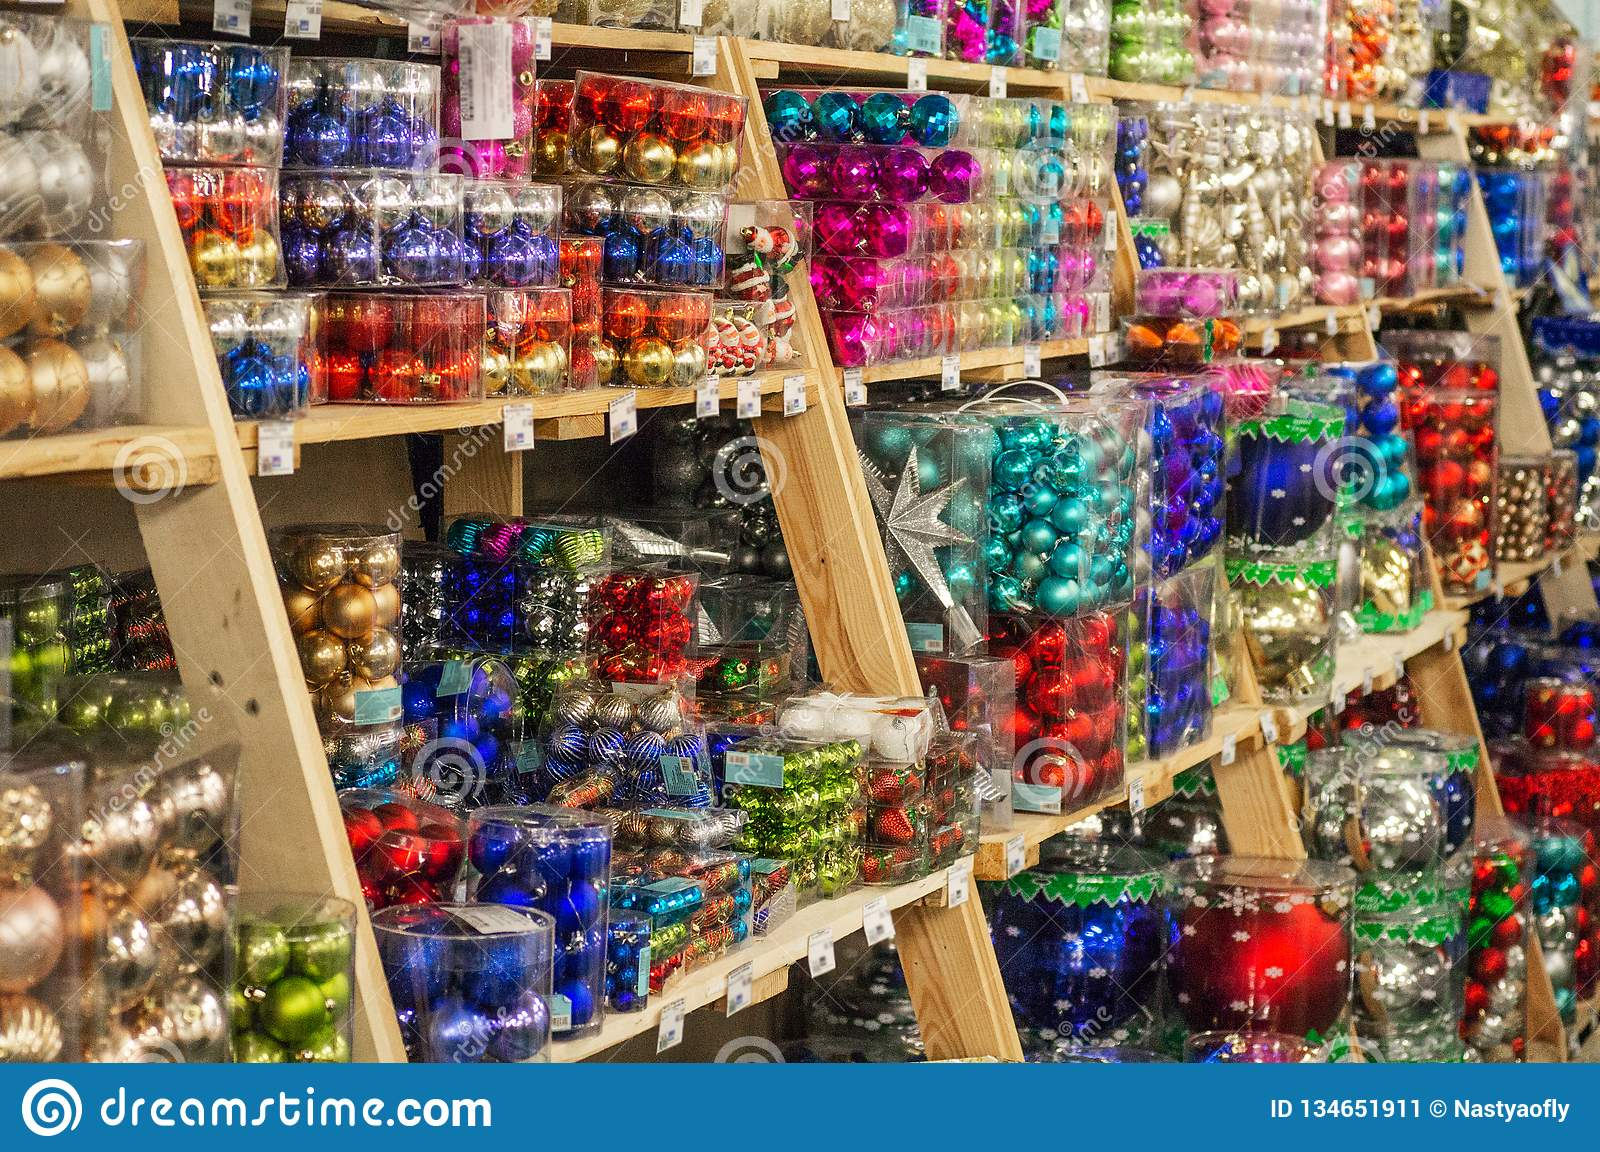 Image result for pics of store shelves full of christmas decorations